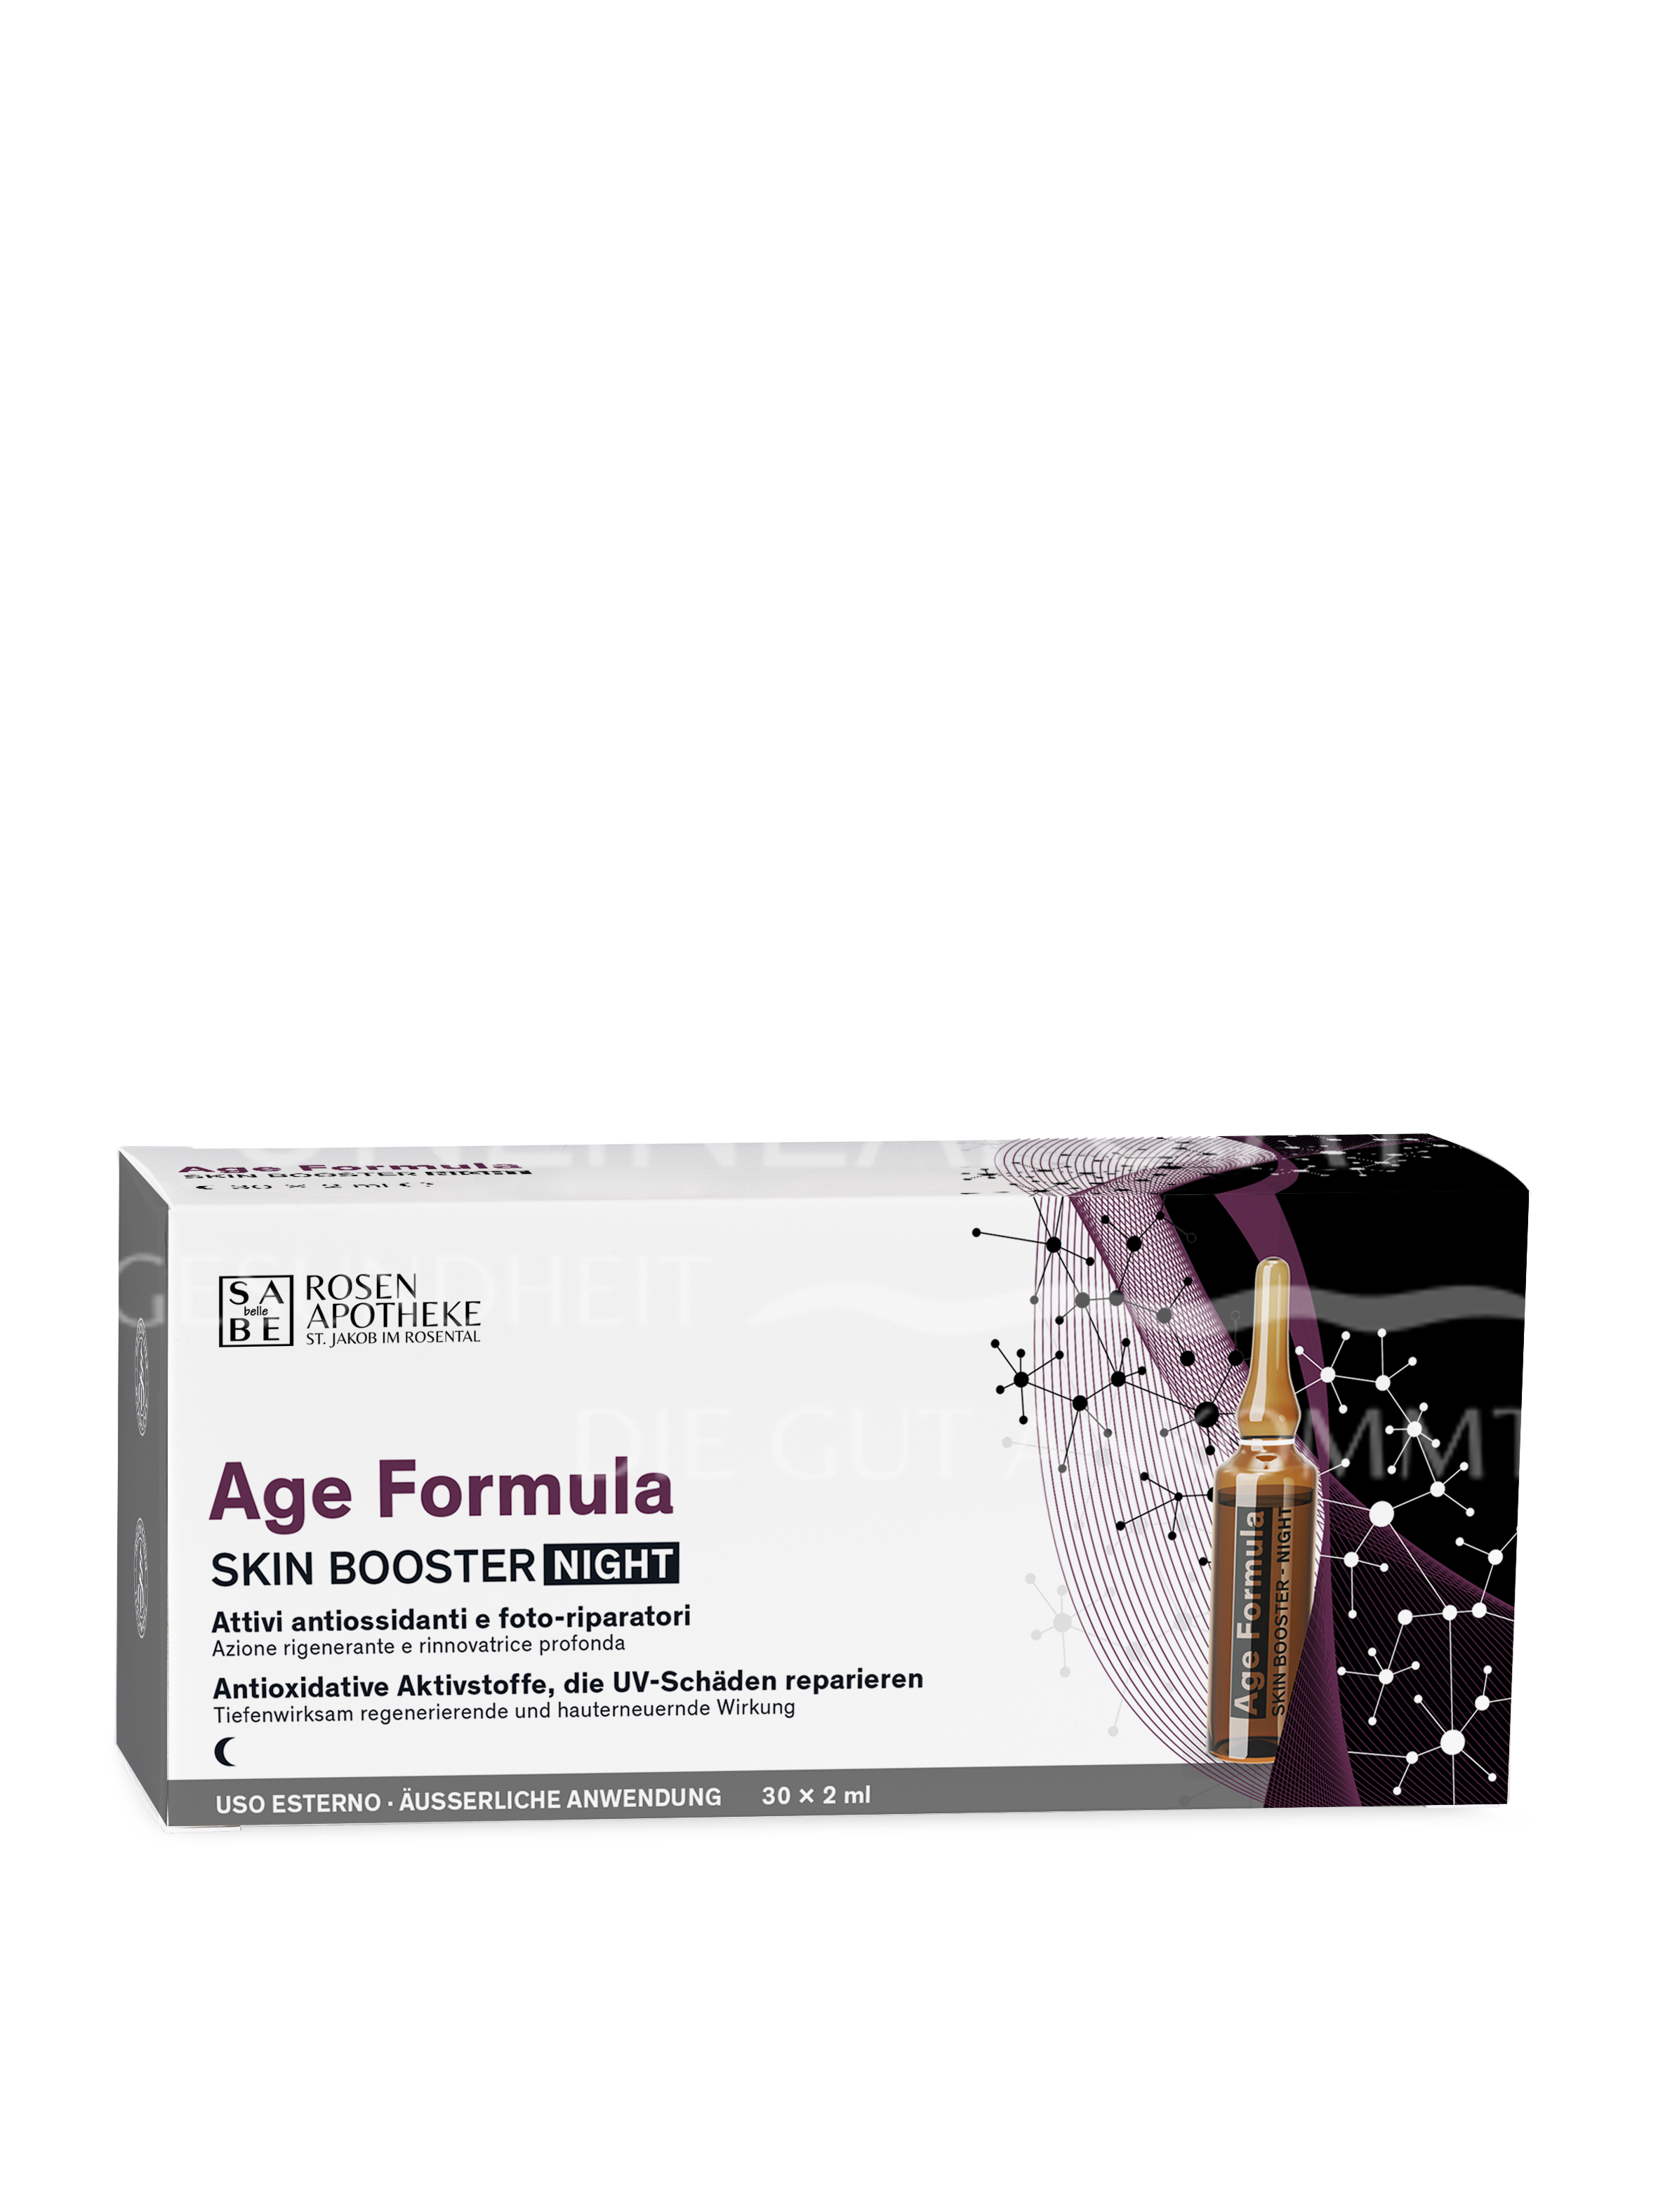 SABE belle Age Formula Skin Booster Night à 2 ml